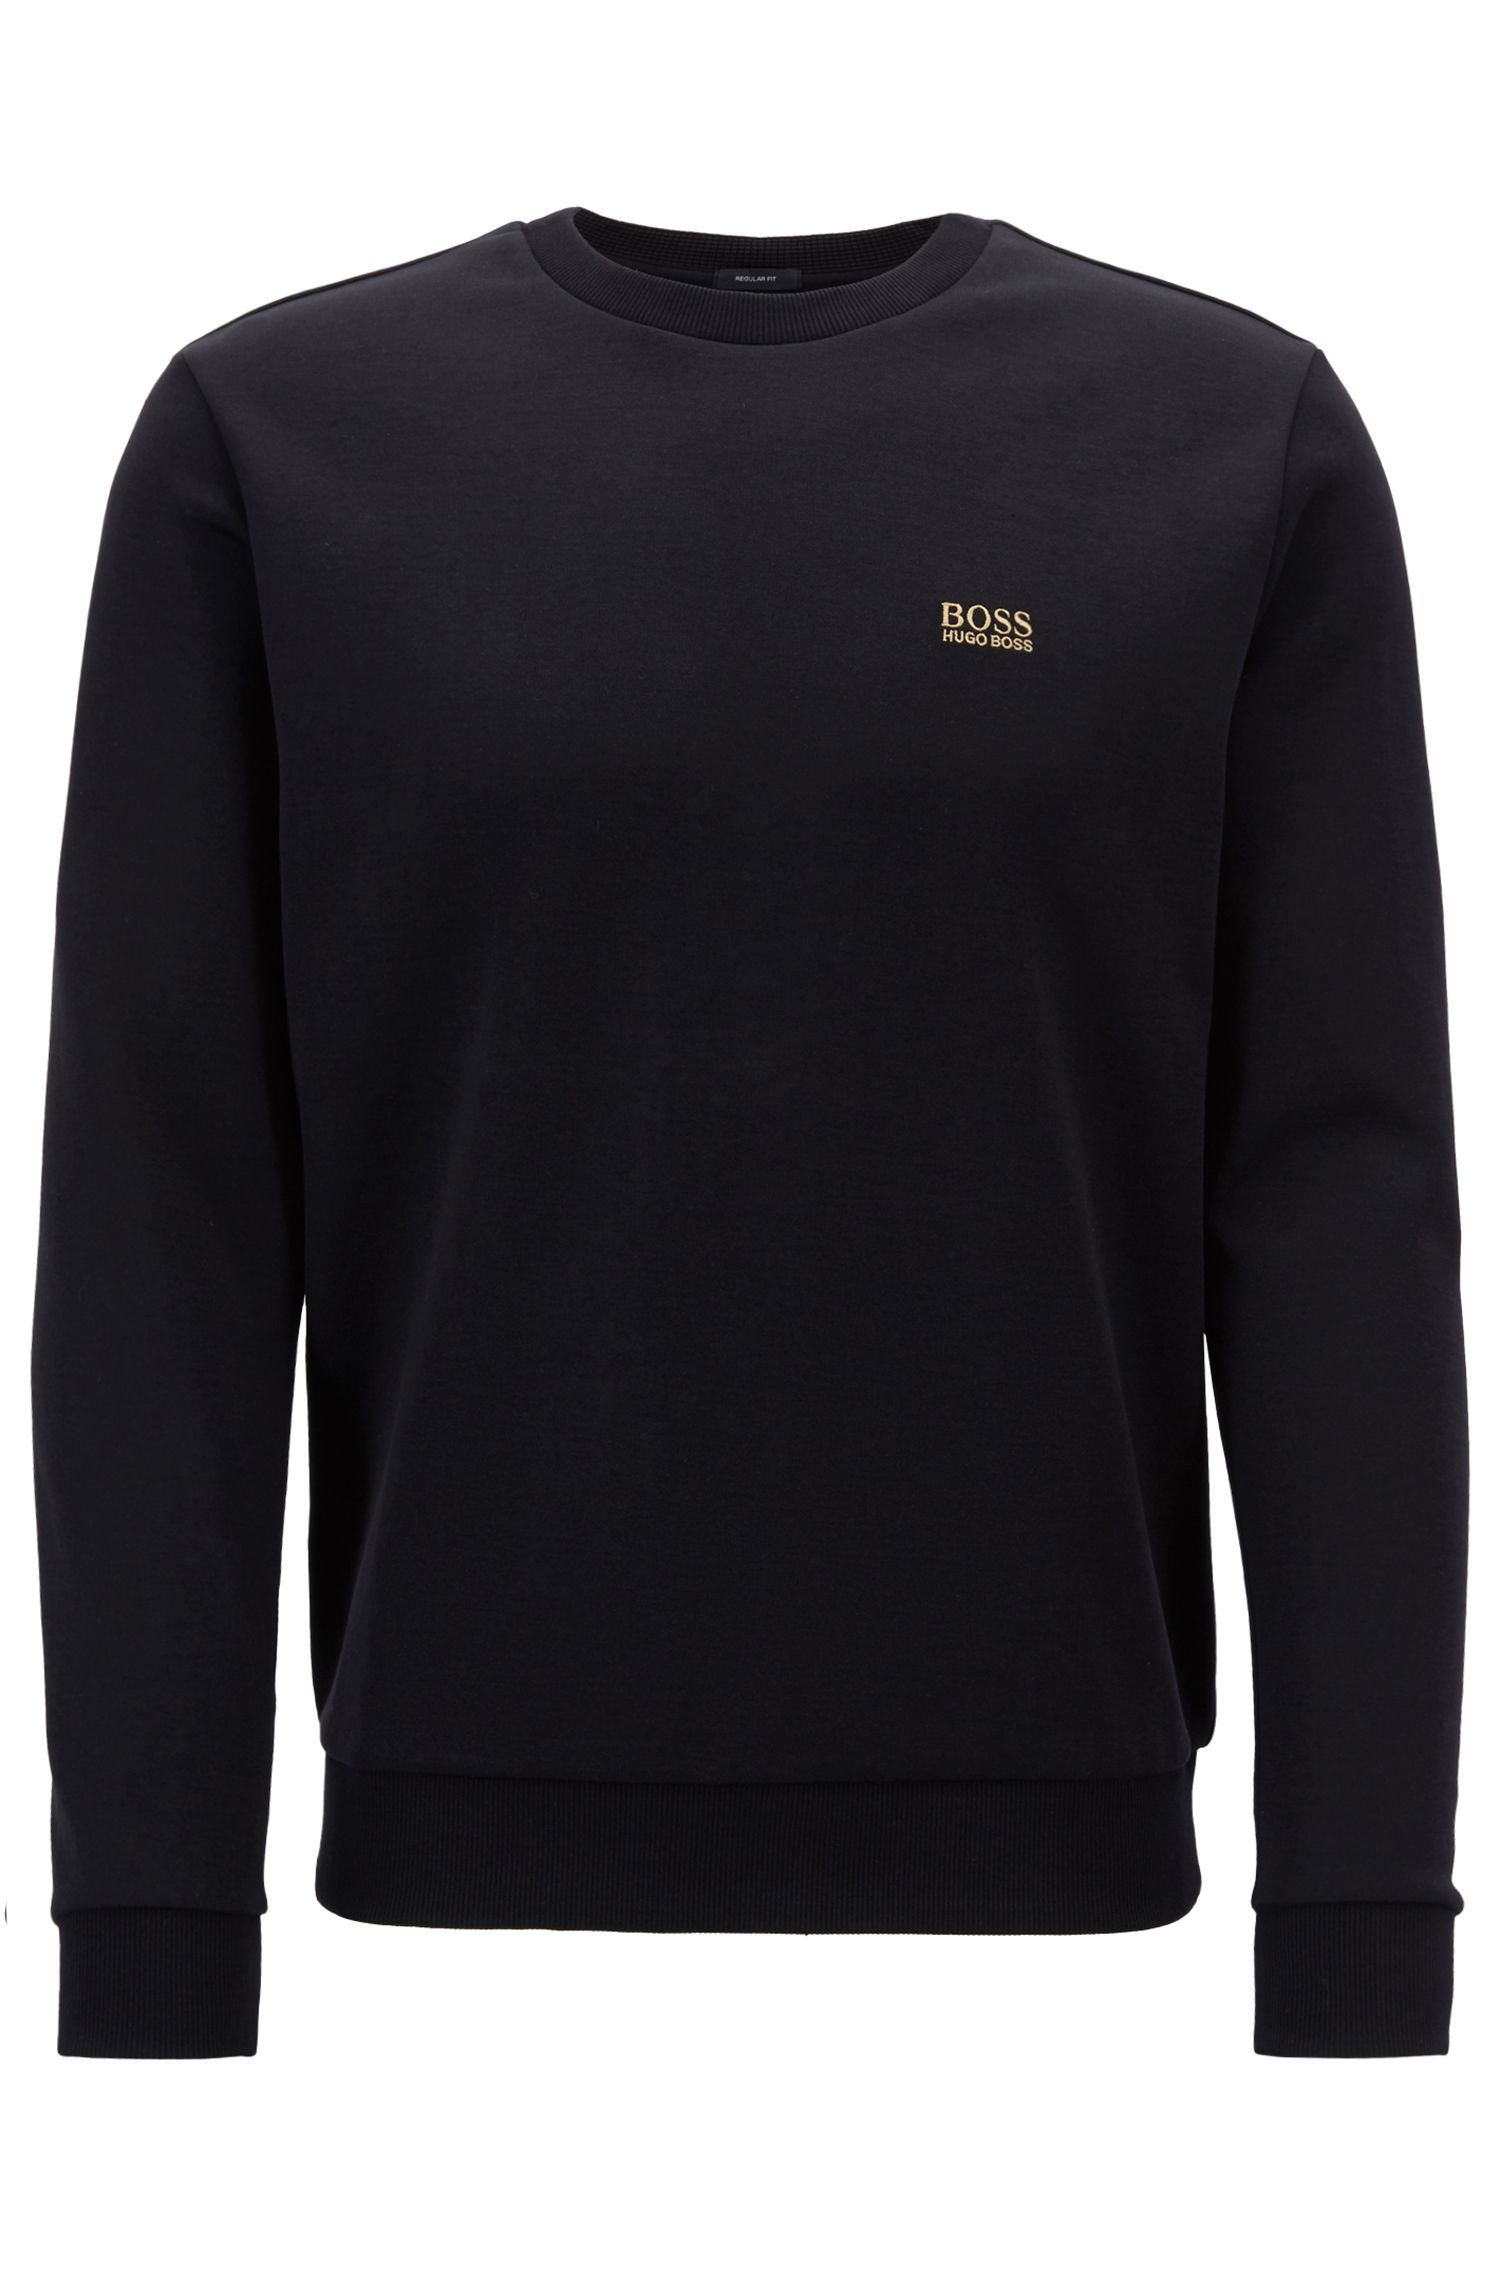 Crew-neck sweatshirt in a double-faced cotton blend